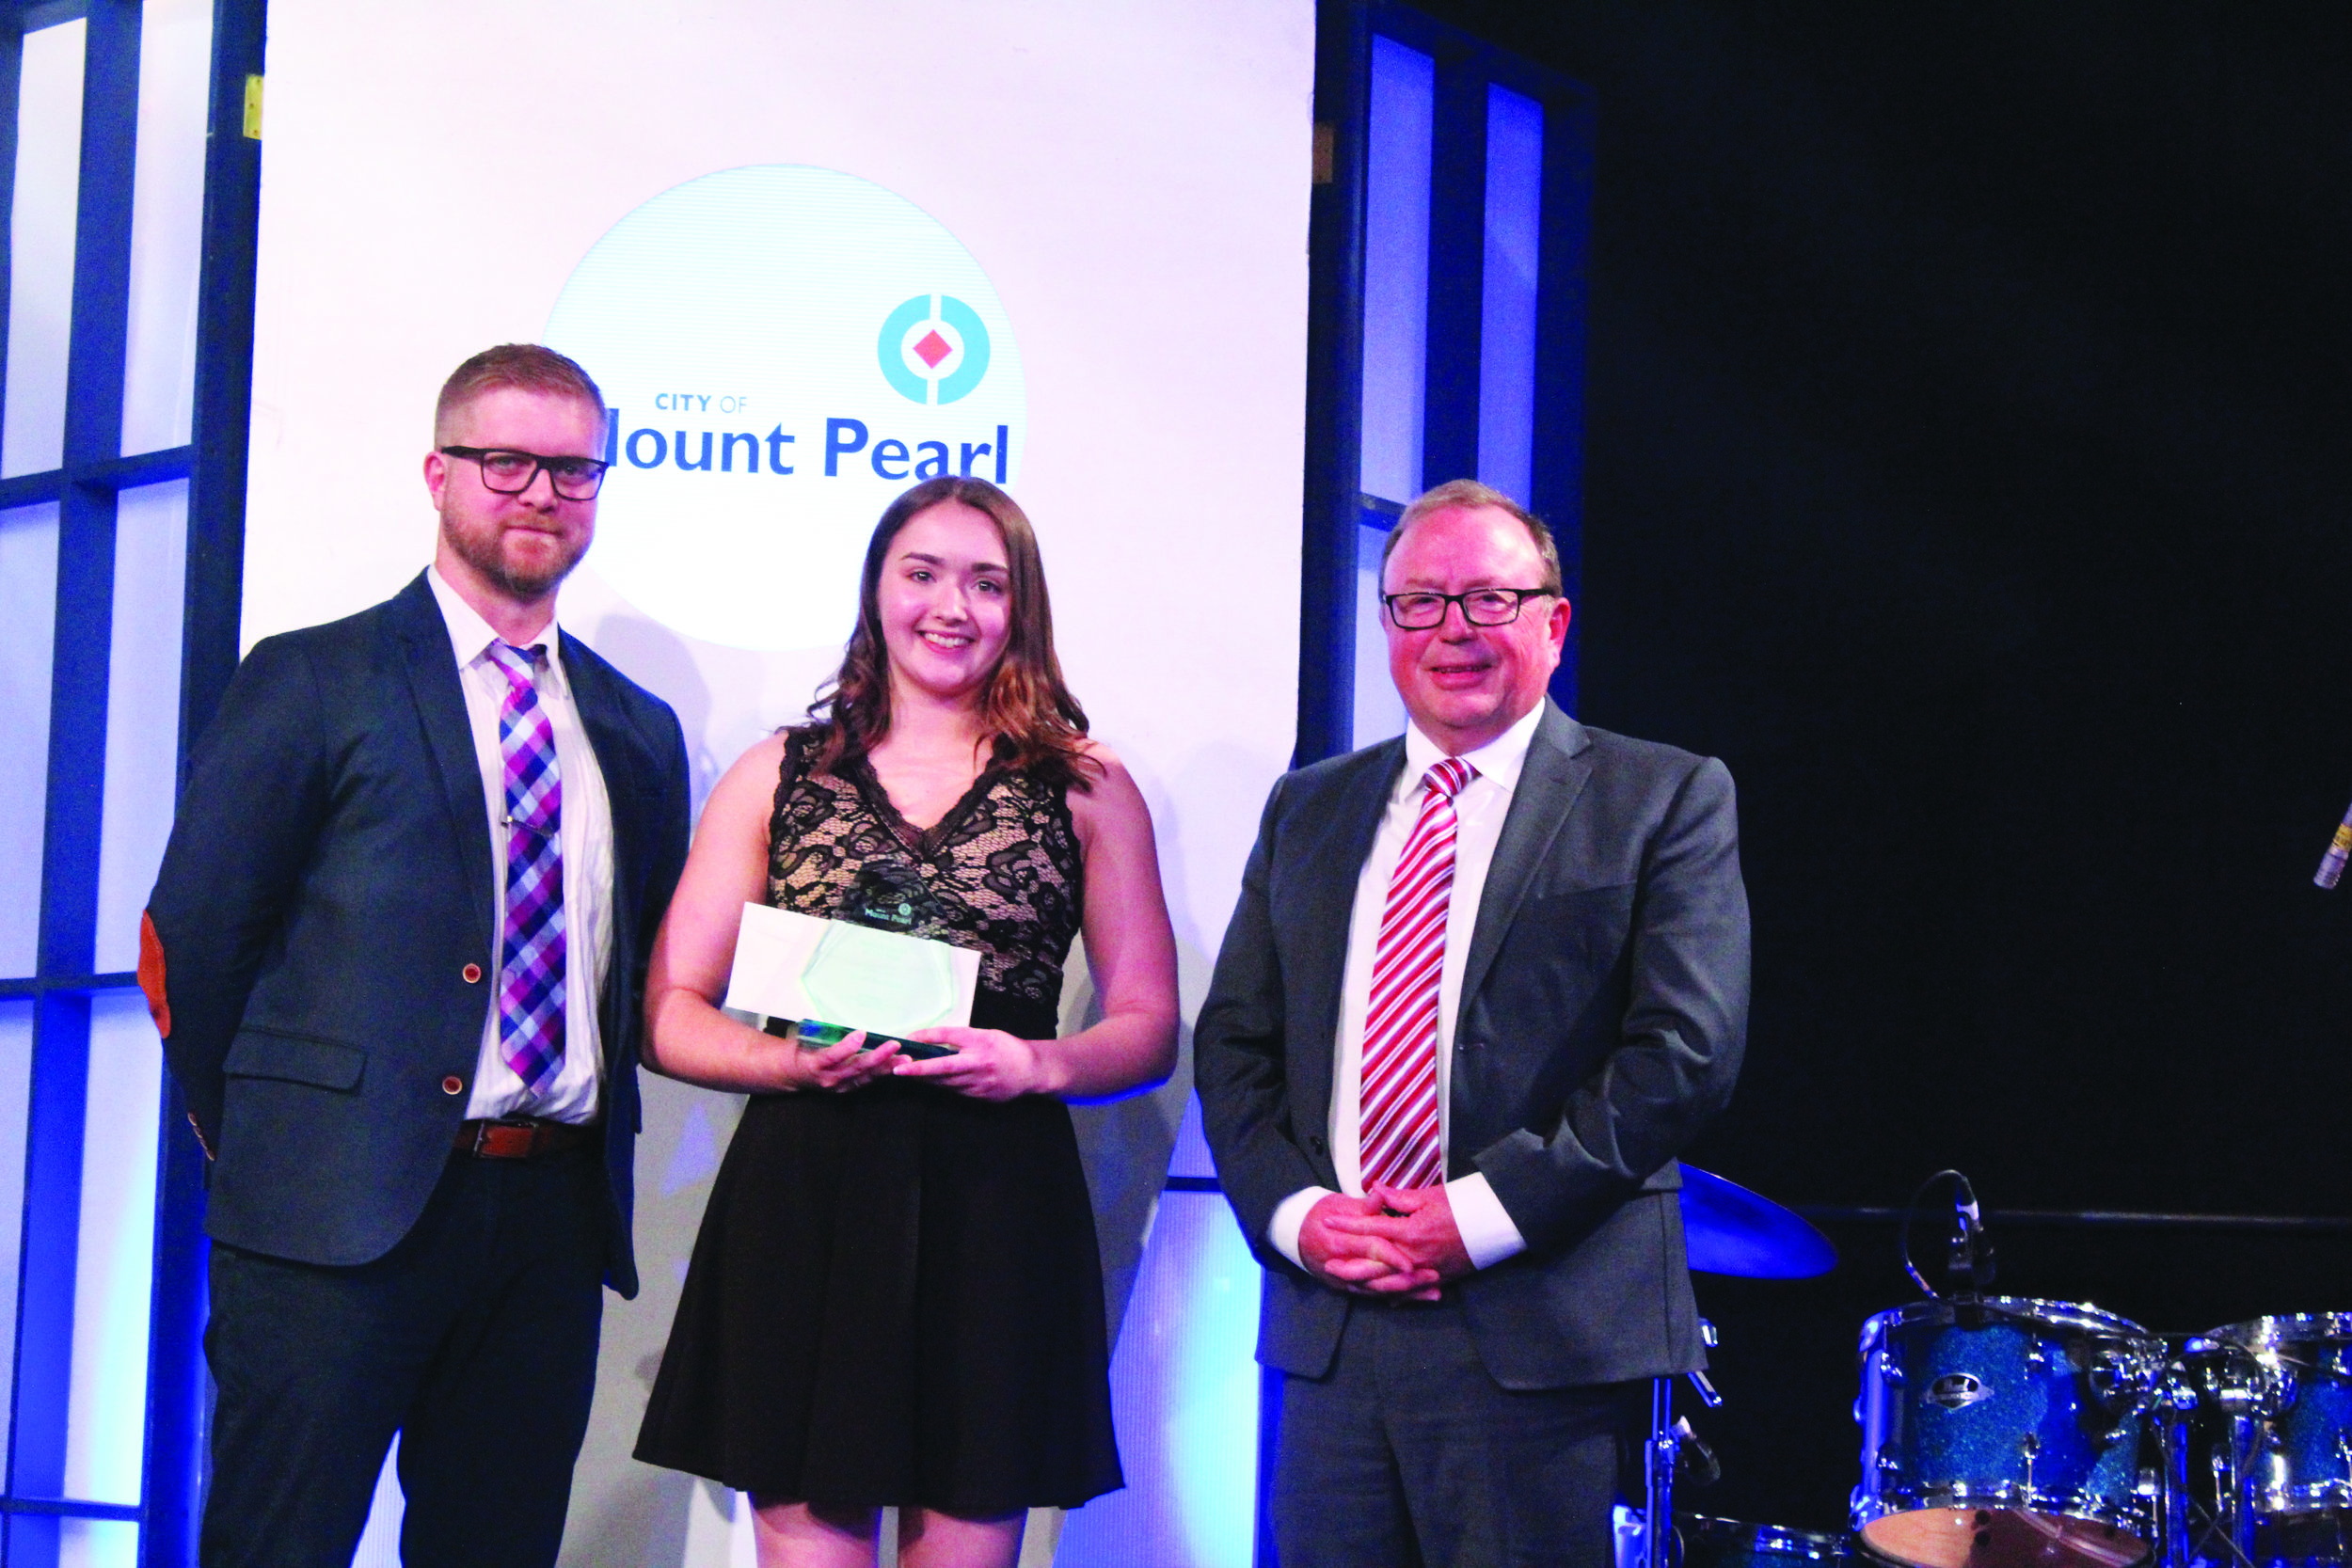 Chris Grimes with the Newfoundland and Labrador Credit Union, Female Youth of the Year Sarah Kennedy (who also took home the STEM award), and Mount Pearl Mayor Dave Aker.  Mark Squib photo